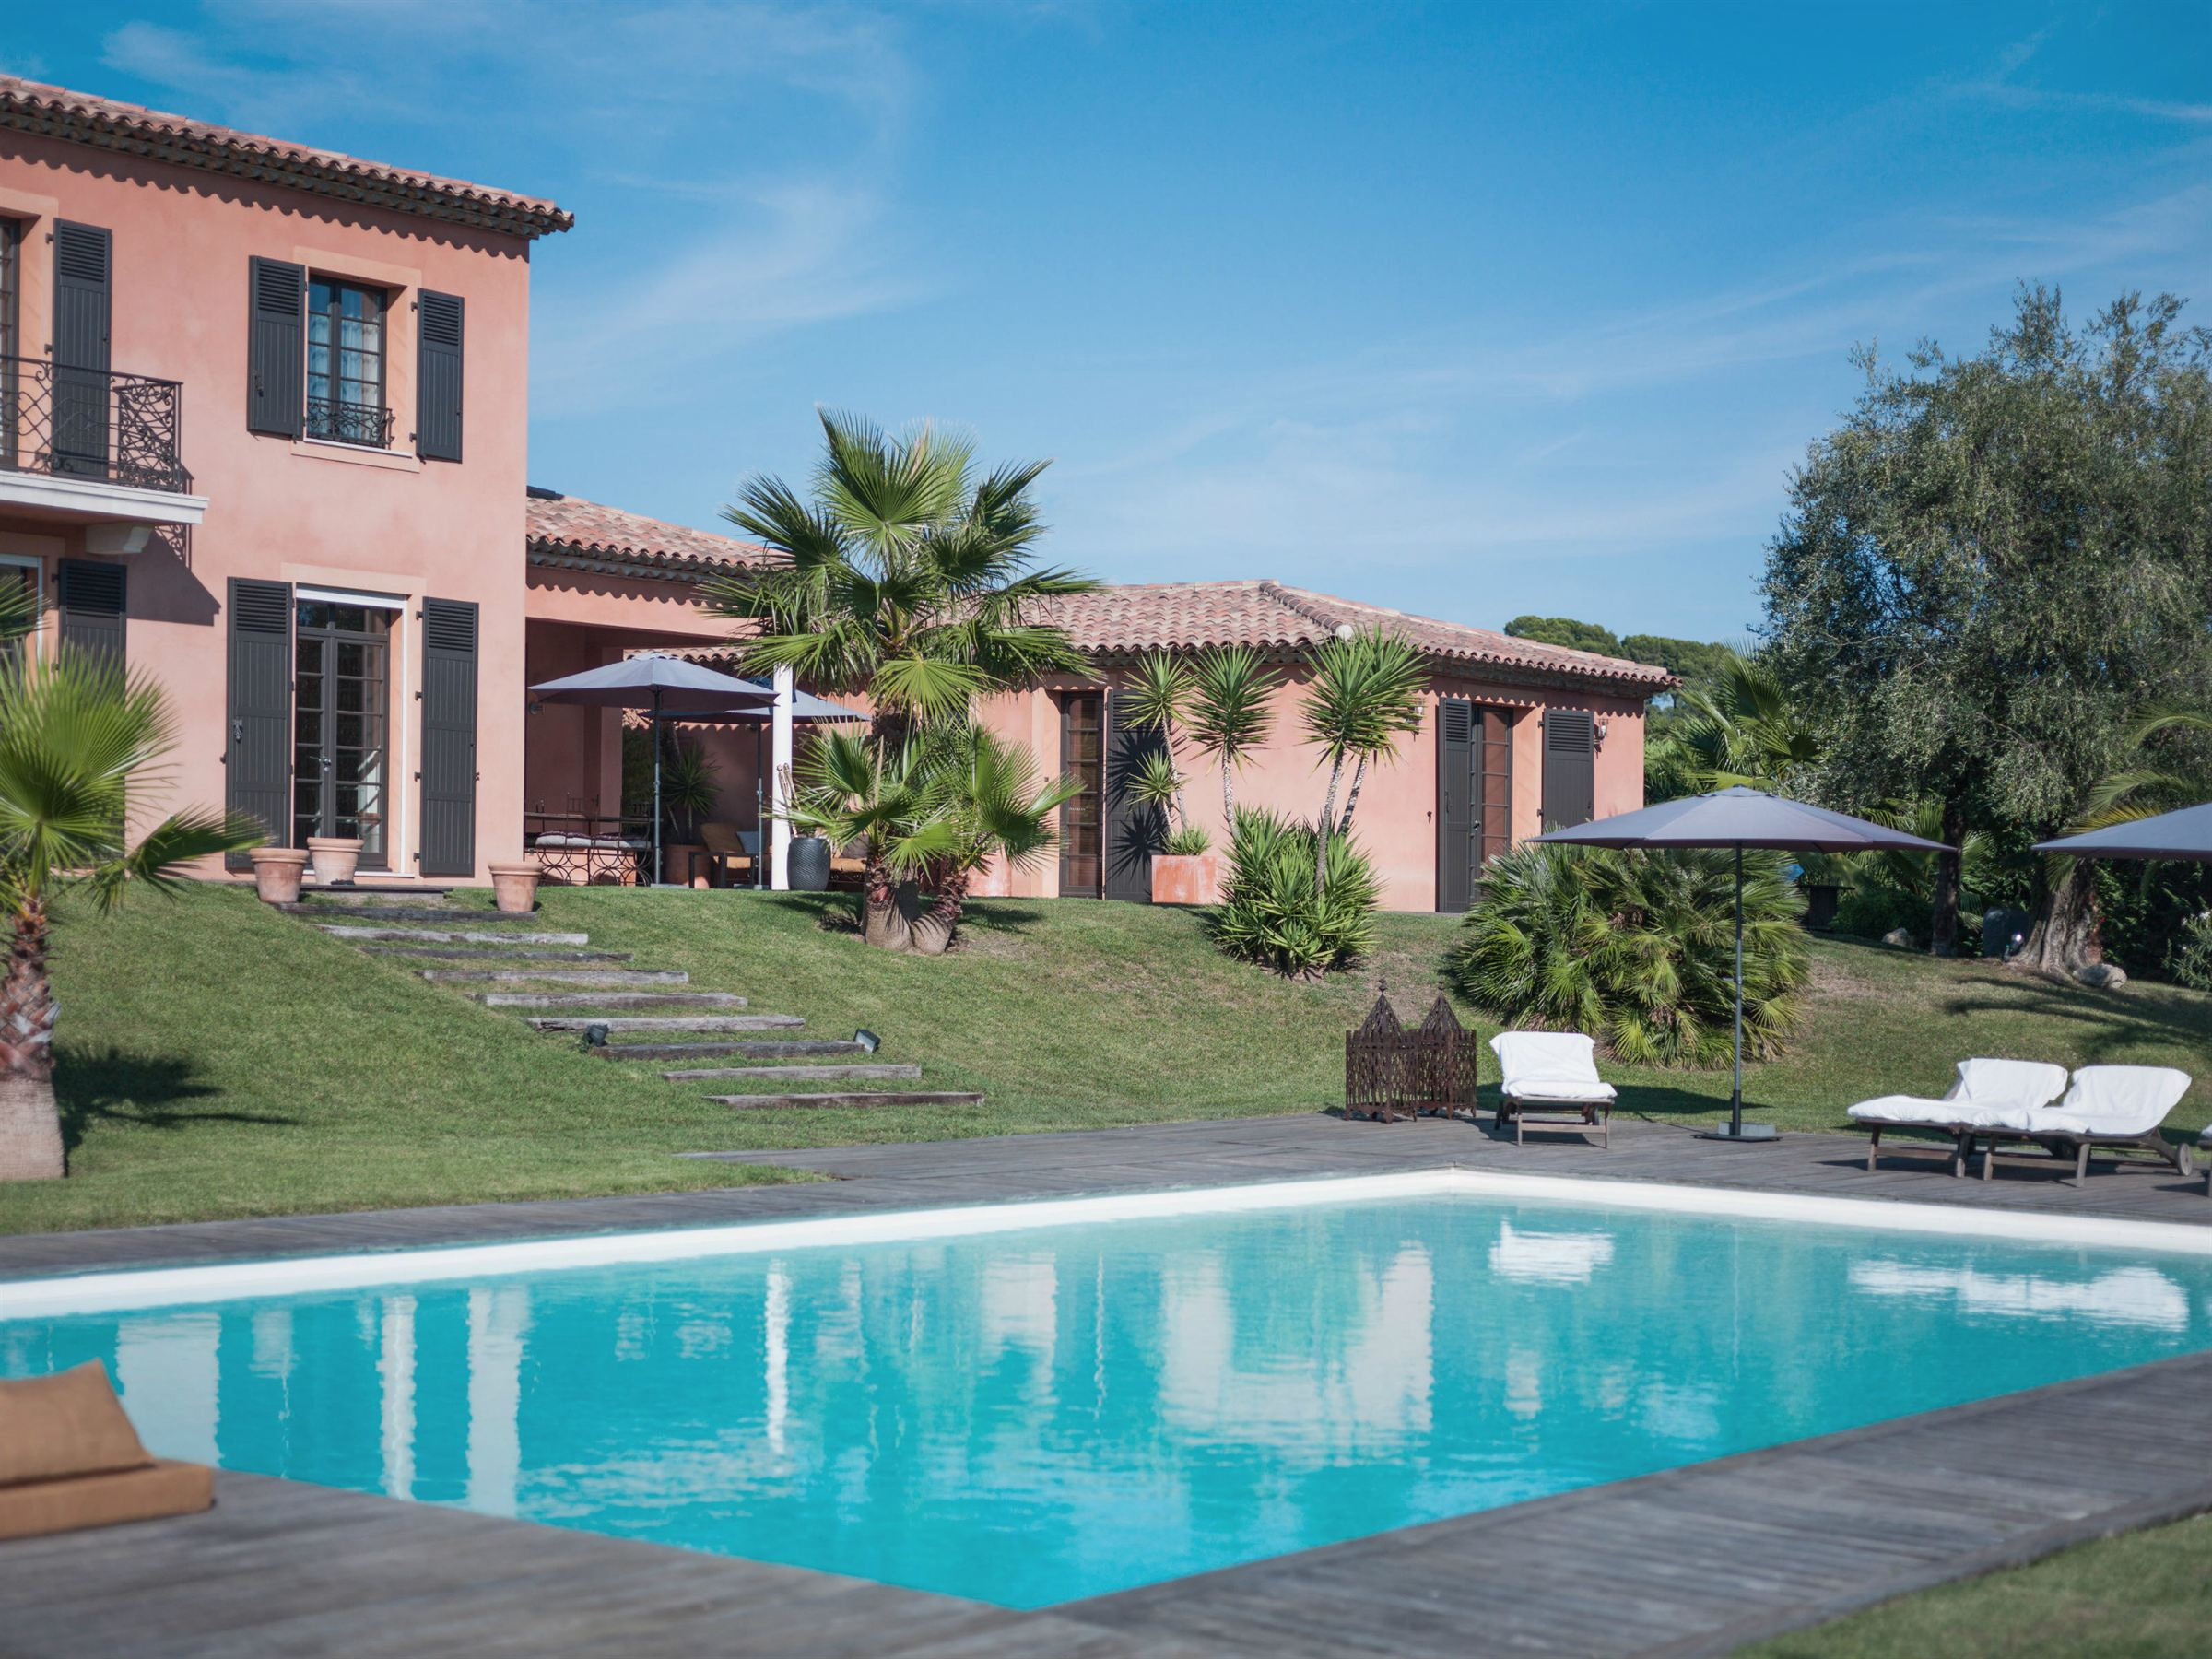 Maison unifamiliale pour l Vente à Beautiful Family Home Mougins, Provence-Alpes-Cote D'Azur, 06250 France